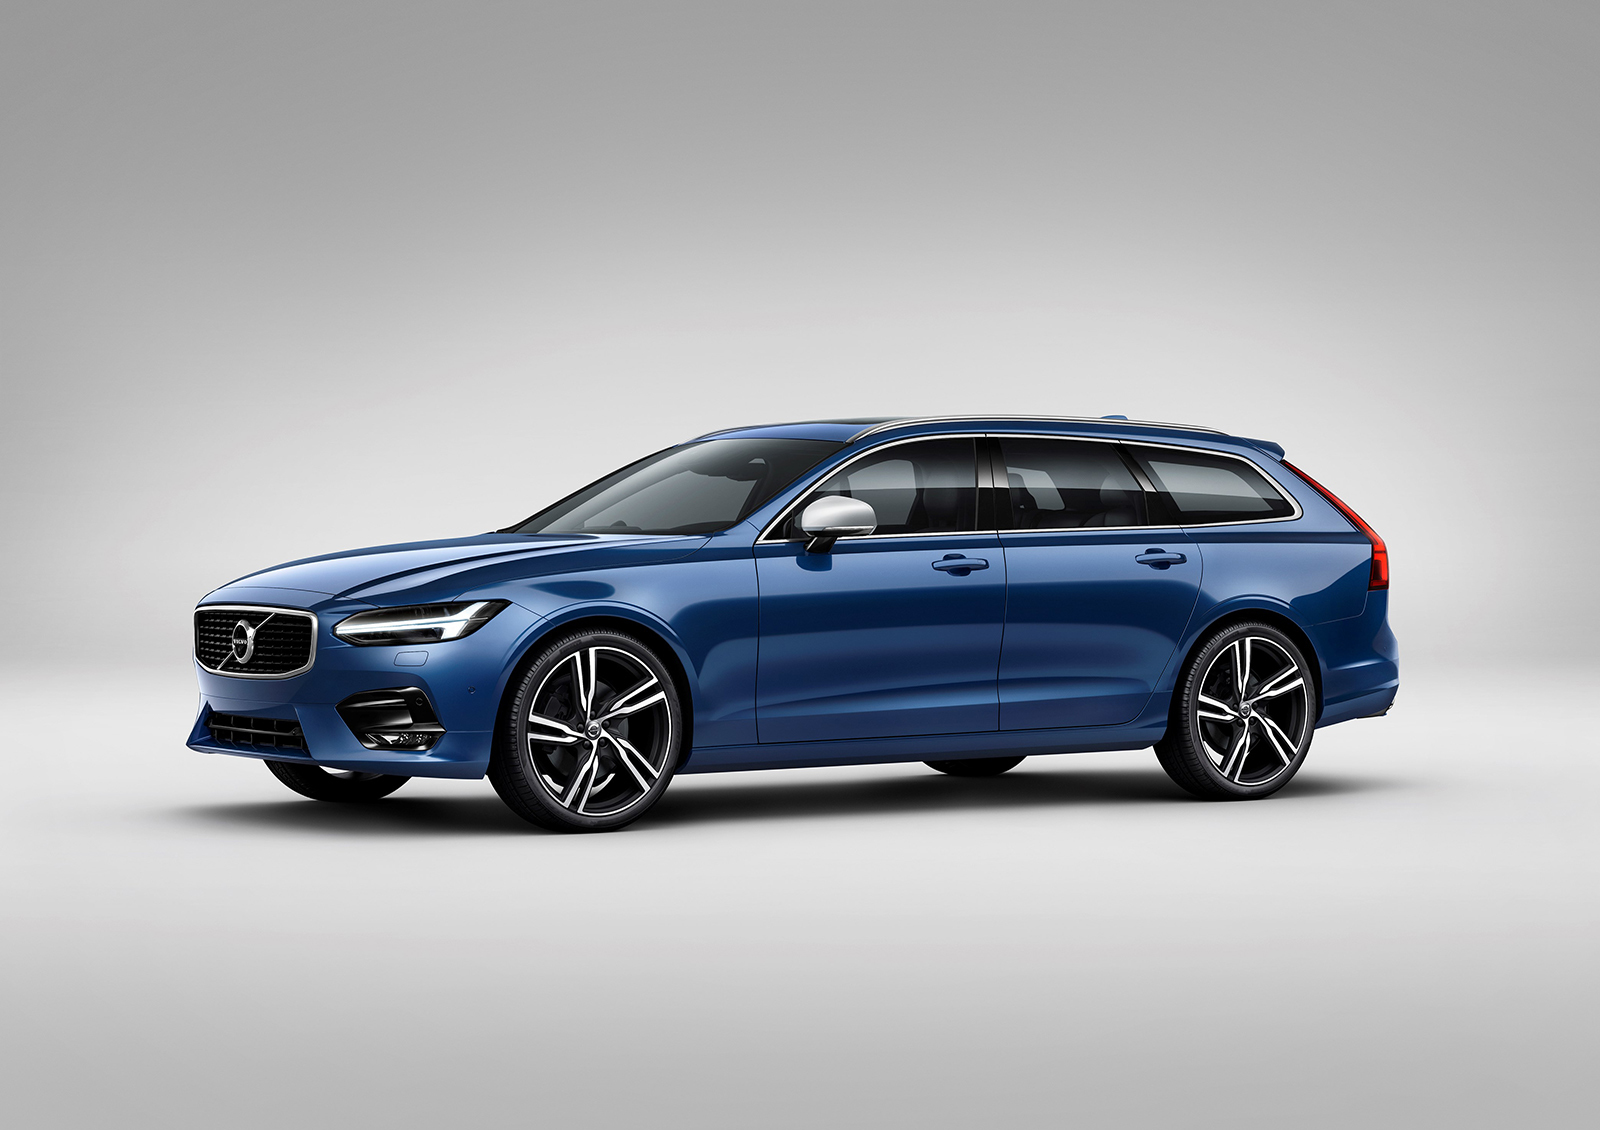 volvo v90 2017 wallpapers images photos pictures backgrounds. Black Bedroom Furniture Sets. Home Design Ideas